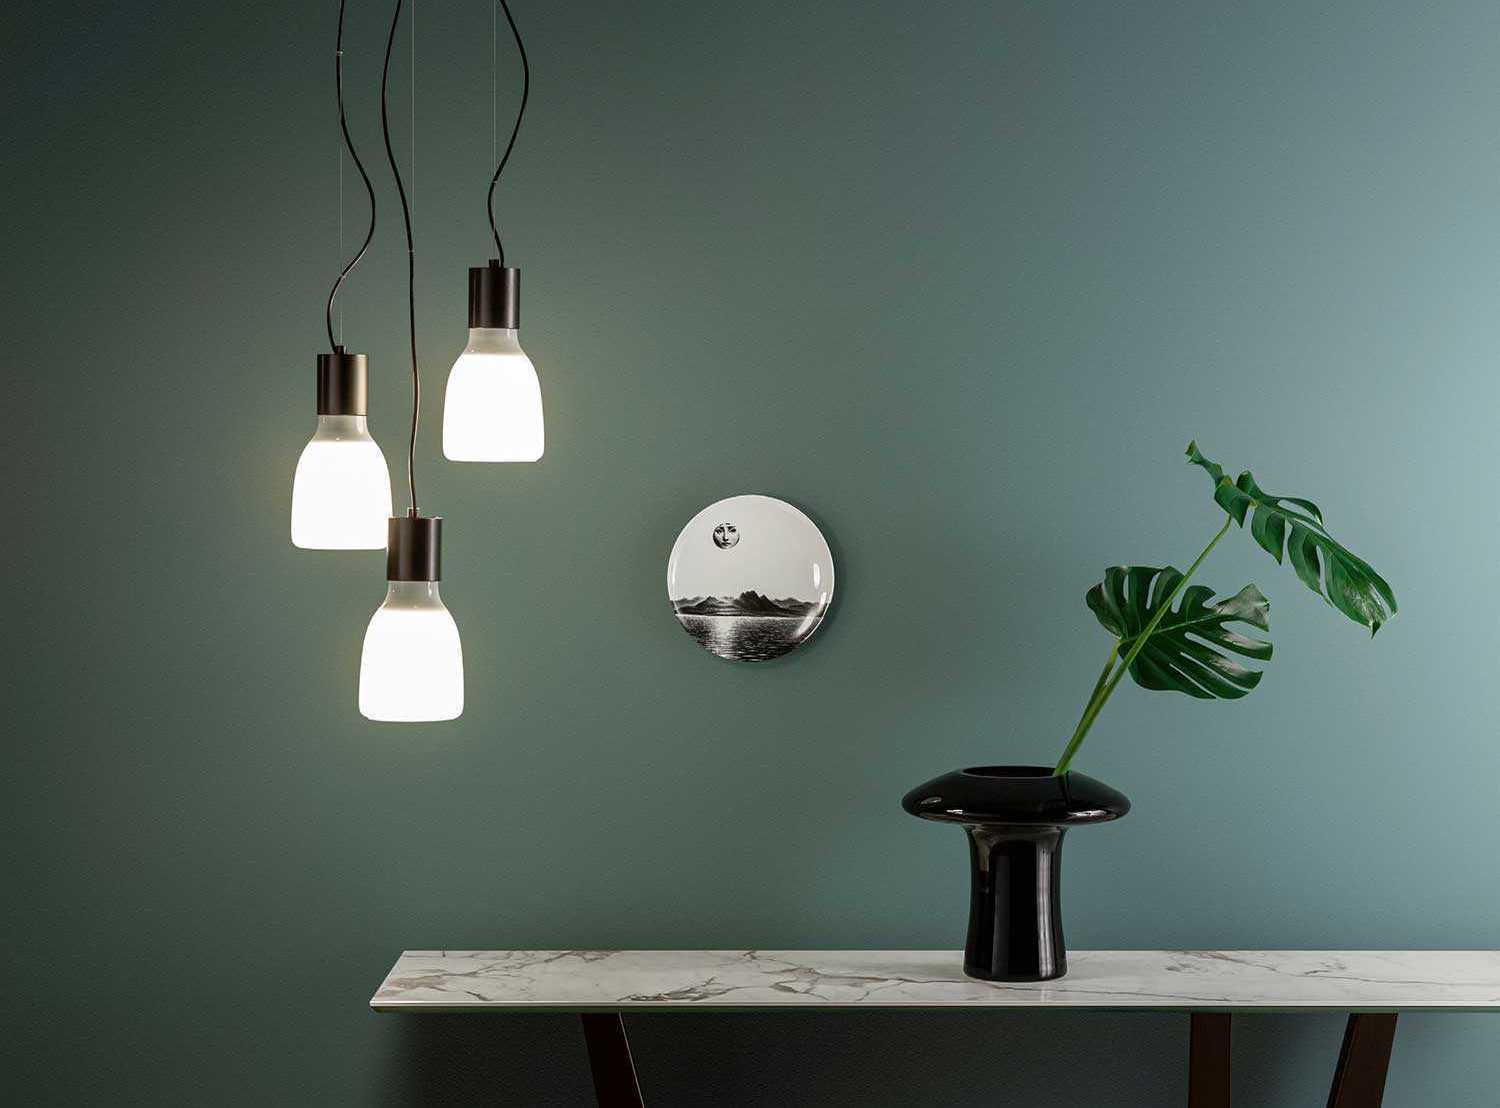 Lighting Design Is The Implementation Of The Quality Of The Enviroment